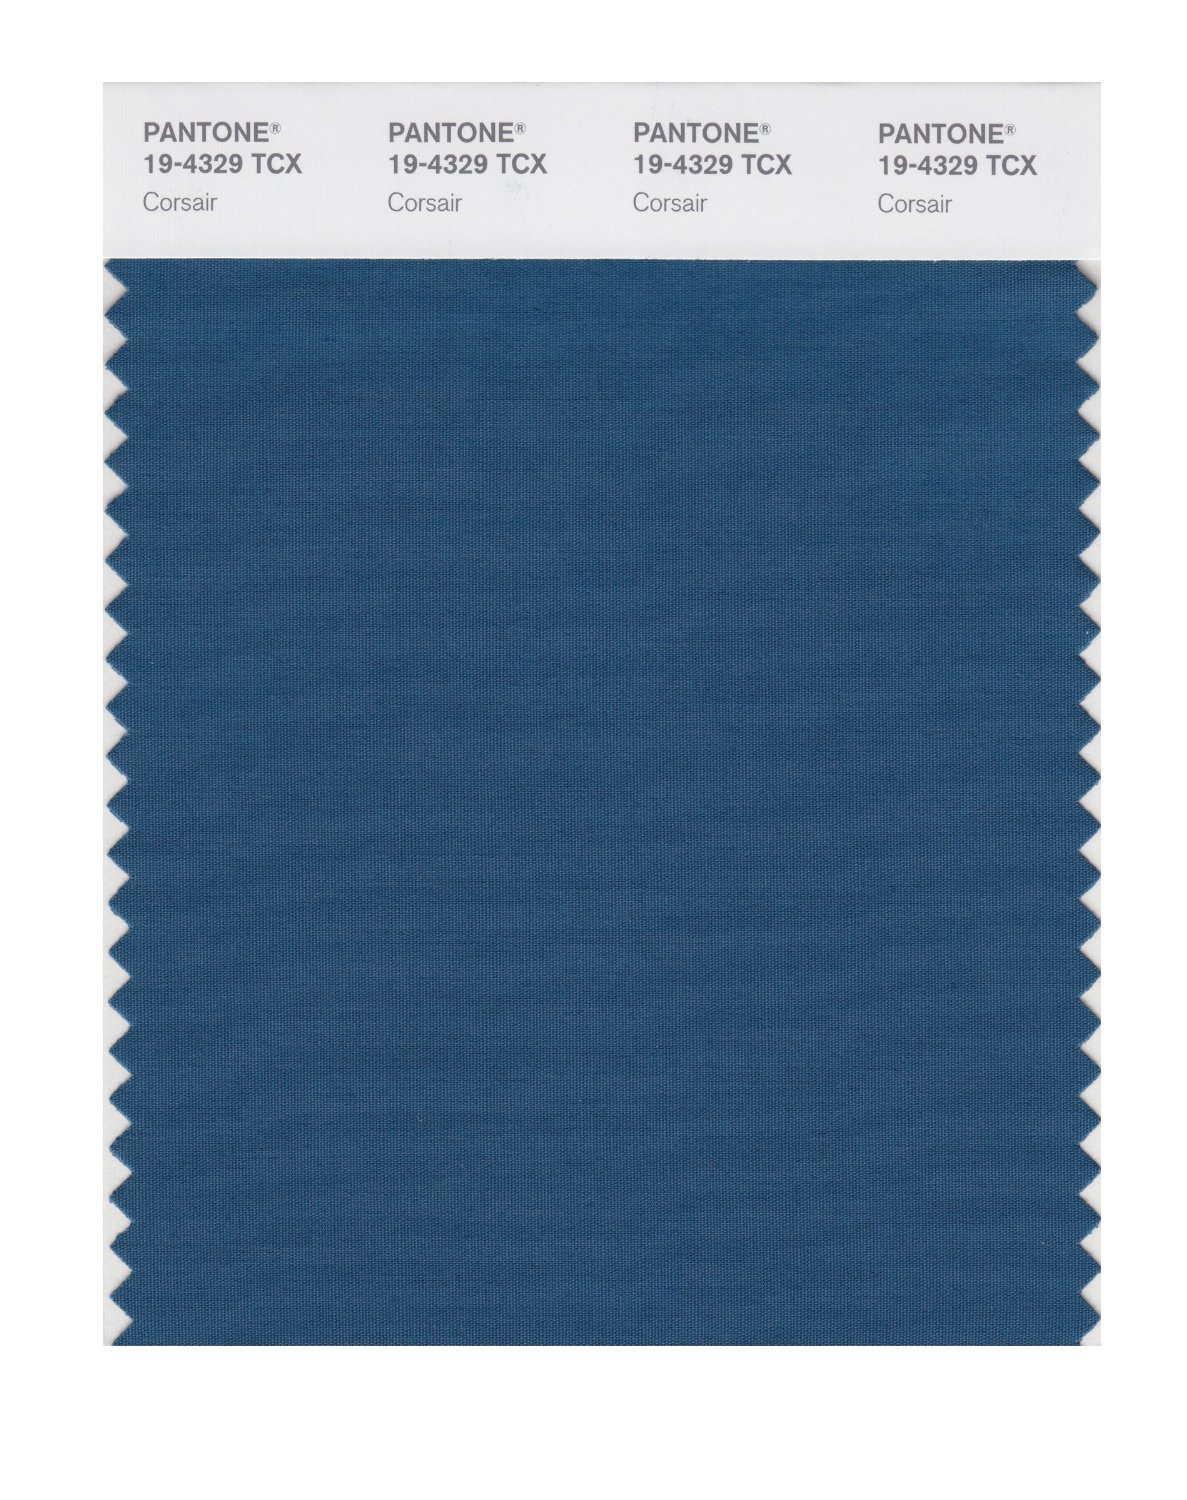 Pantone Smart Swatch 19-4329 Corsair